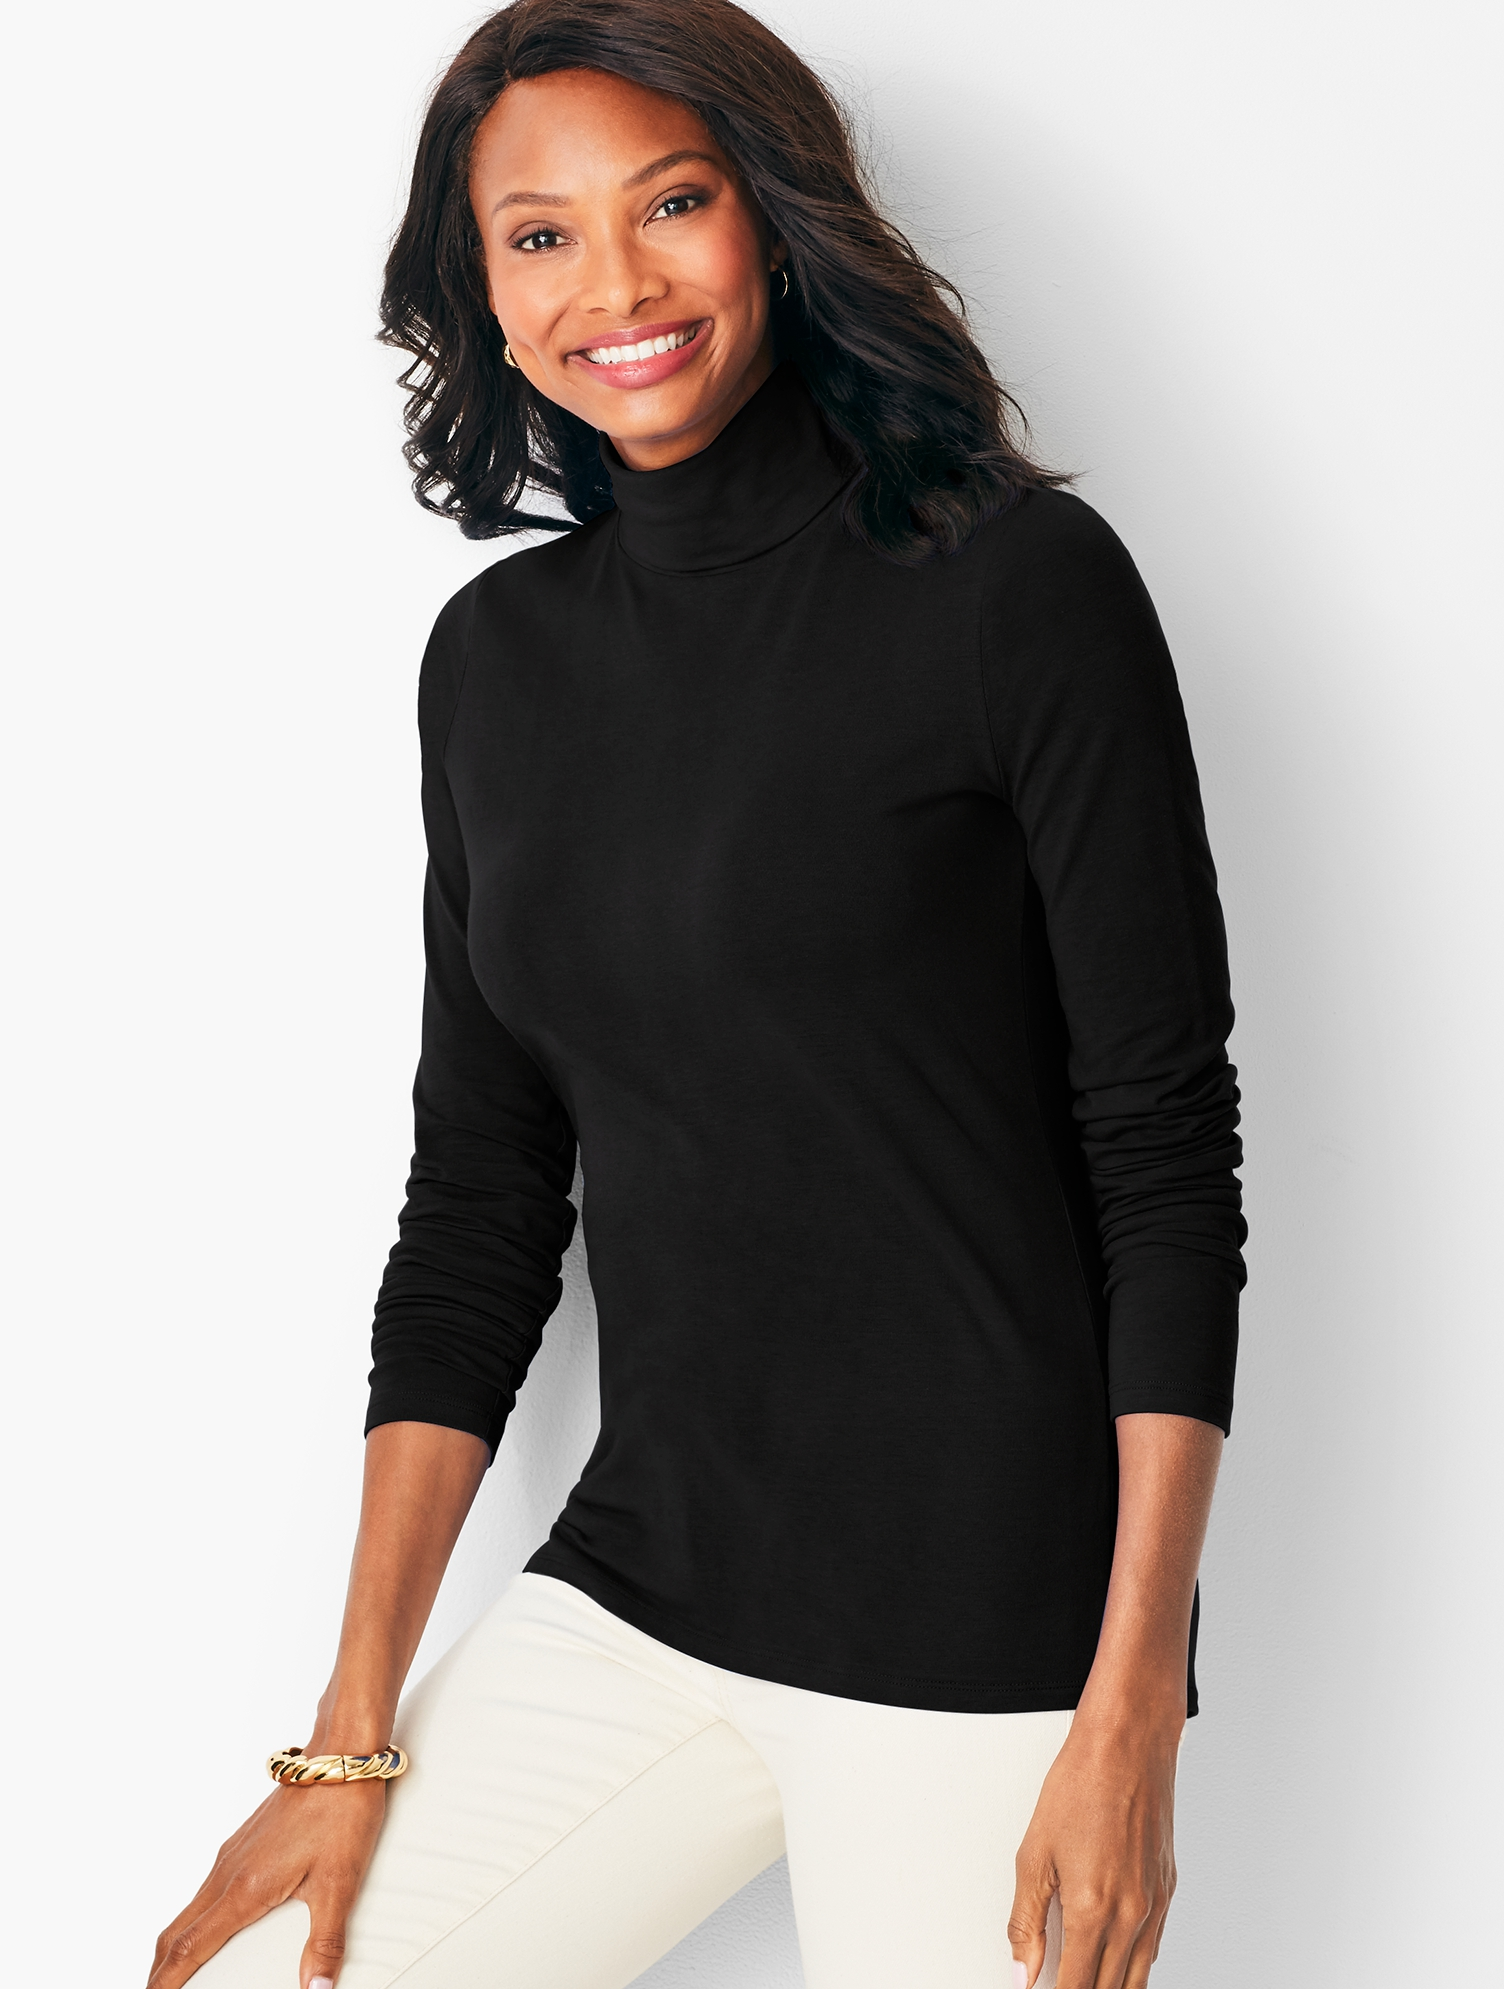 A tried and true cotton-spandex turtleneck in all-new must-have colors. Wear this solid wardrobe staple with any blazer or sweater over jeans or a skirt. features Classic turtleneck silhouetteLong sleevesImported Fit: Length: Misses 25 1/2 inches; Petite 24 1/2 inches; Plus Size 27 inches; Plus Size Petite 26 inches Material: 95% cotton/5% spandex Care: Machine wash; tumble dry Long-Sleeve Turtleneck - Black - XL Talbots